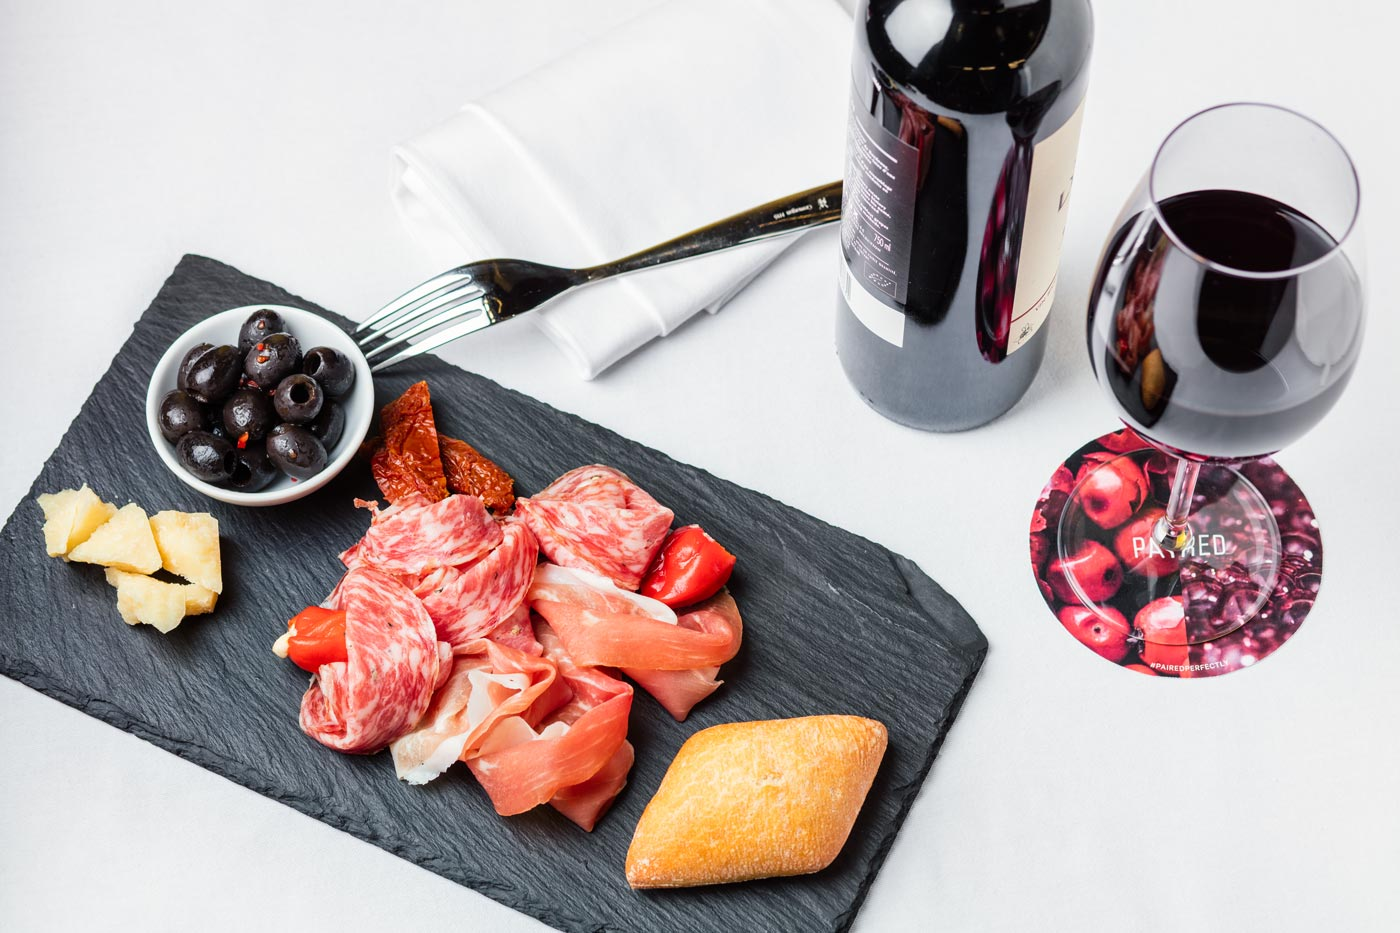 Salami and italian ham, olives, ciabatta and red wine